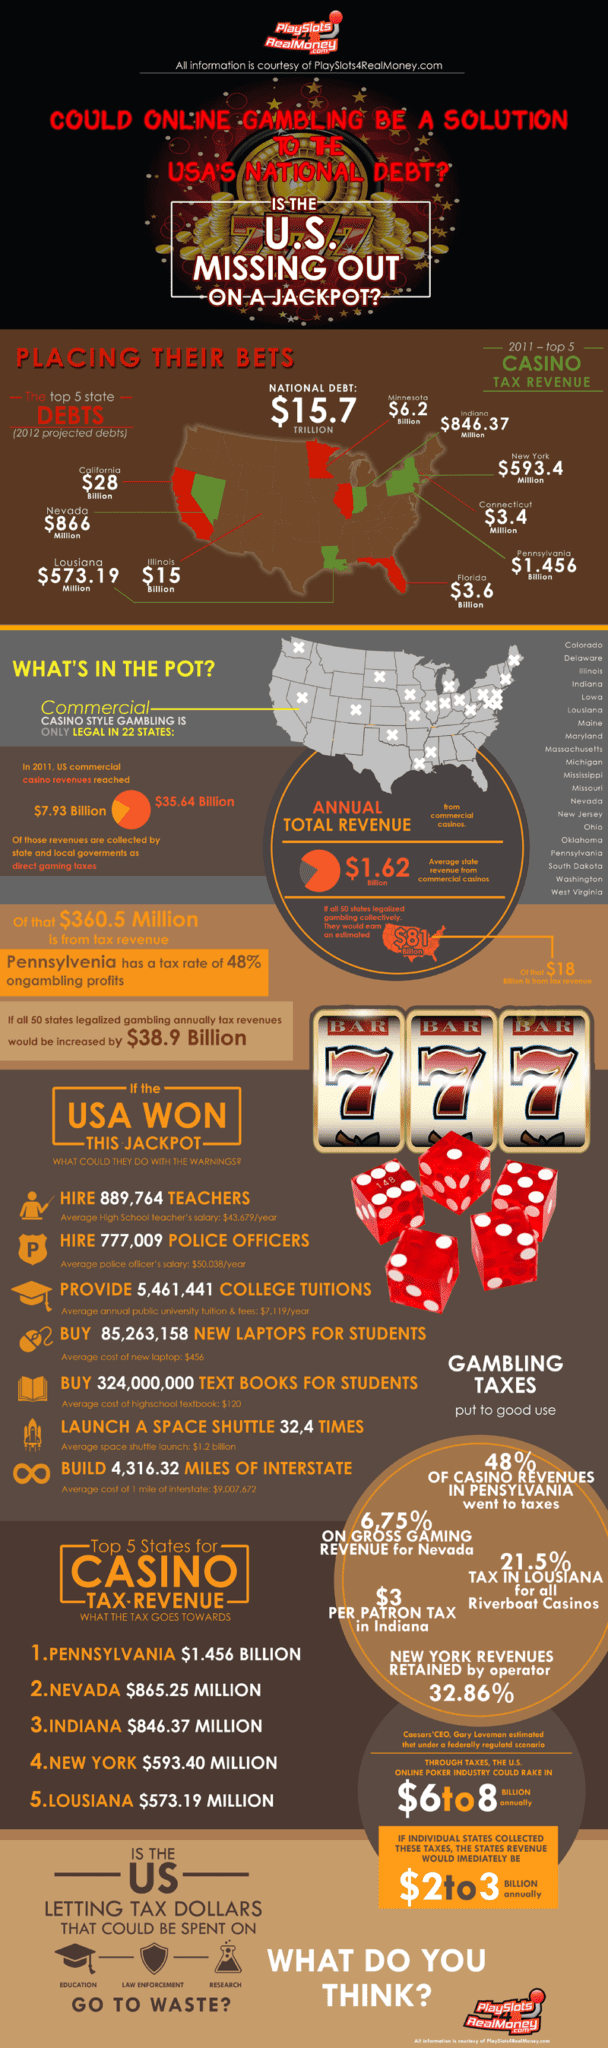 best real money online casino sites